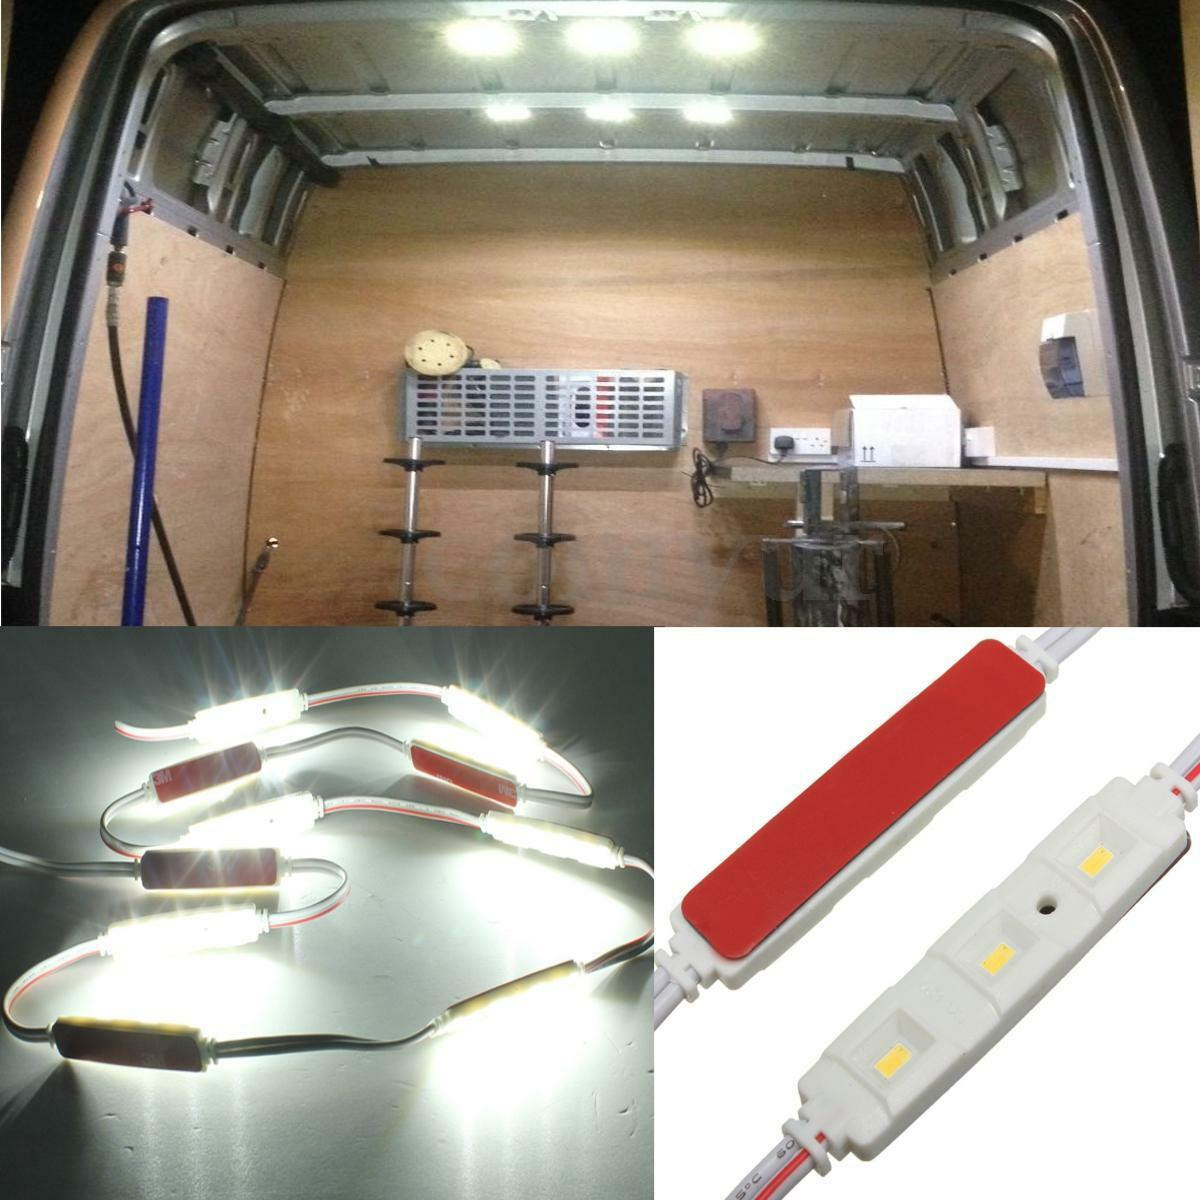 12v 30 led car interior light strip super white fit lwb van sprinter transit vw. Black Bedroom Furniture Sets. Home Design Ideas